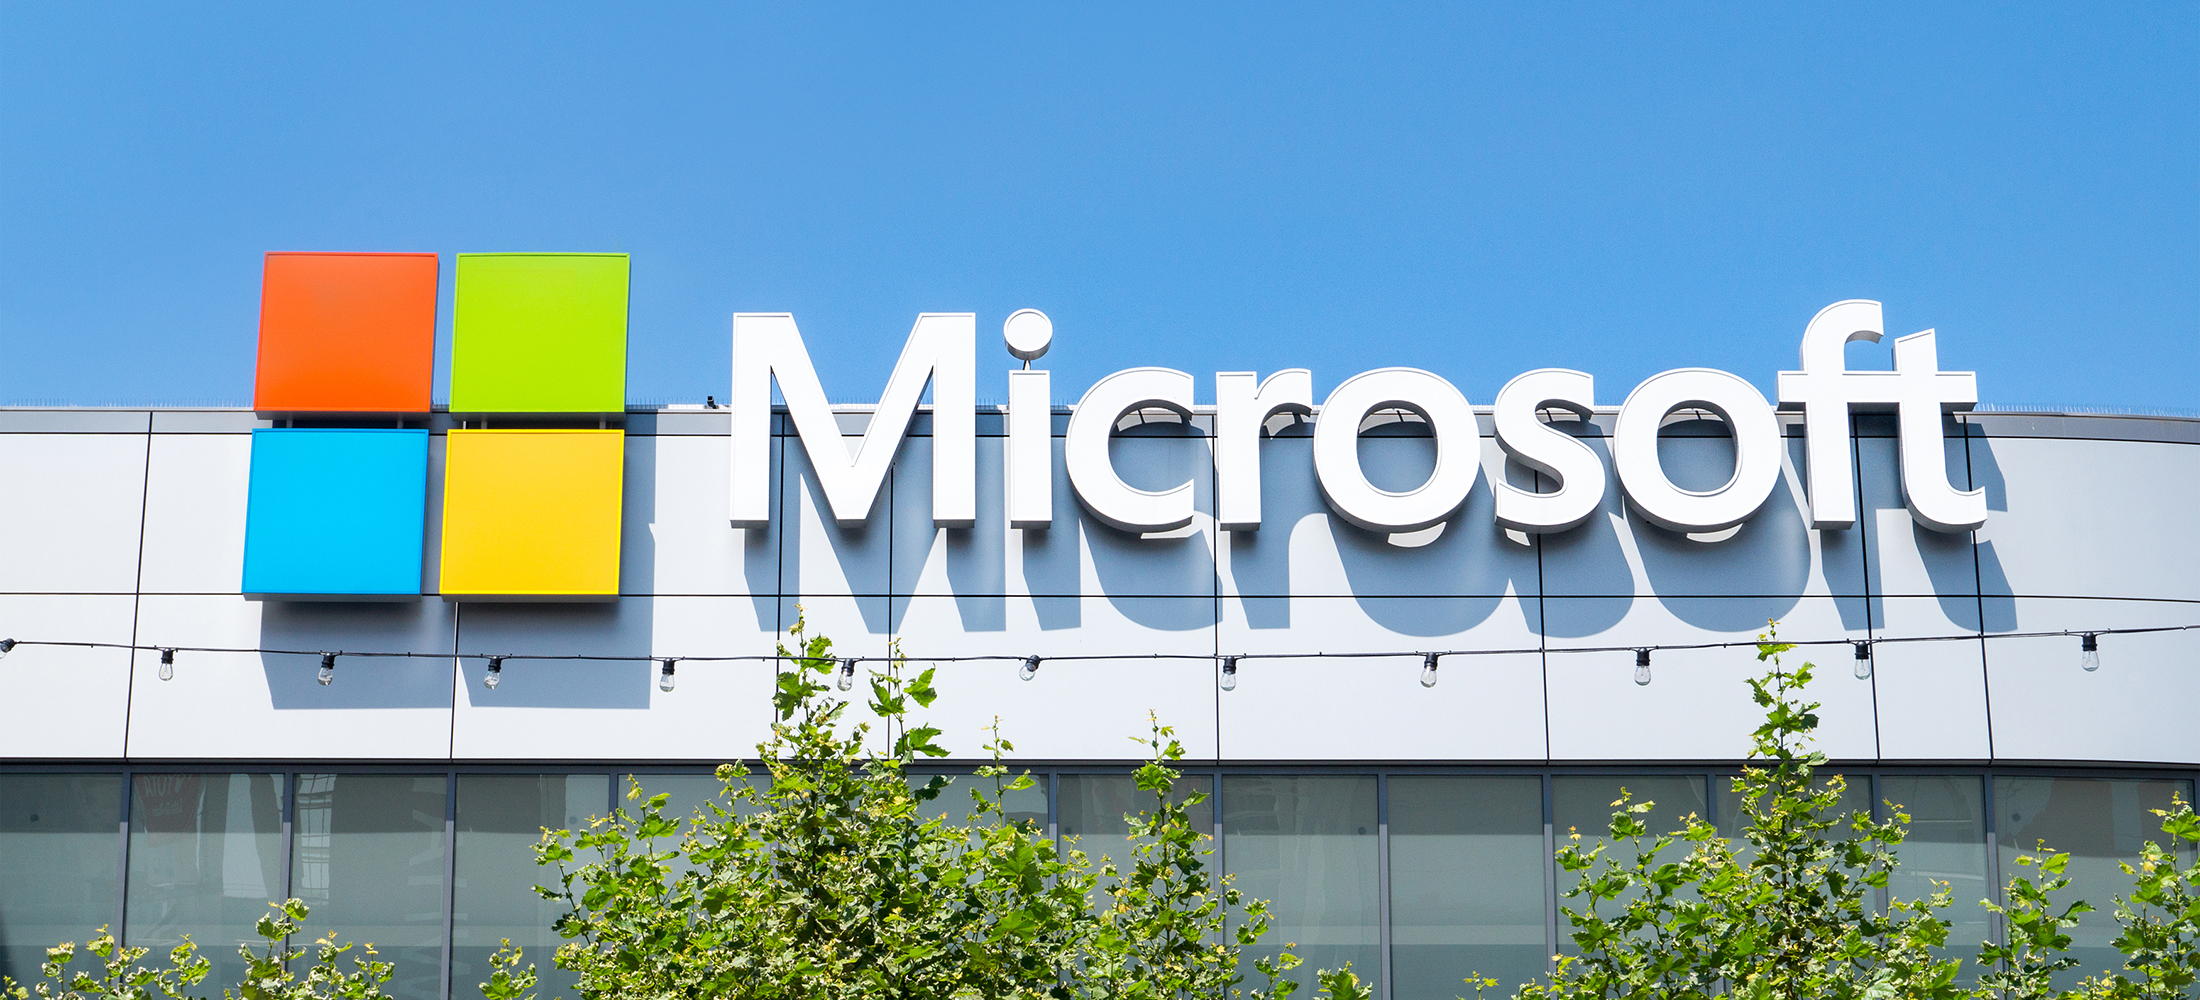 Microsoft Announcement Great News for Partner Community